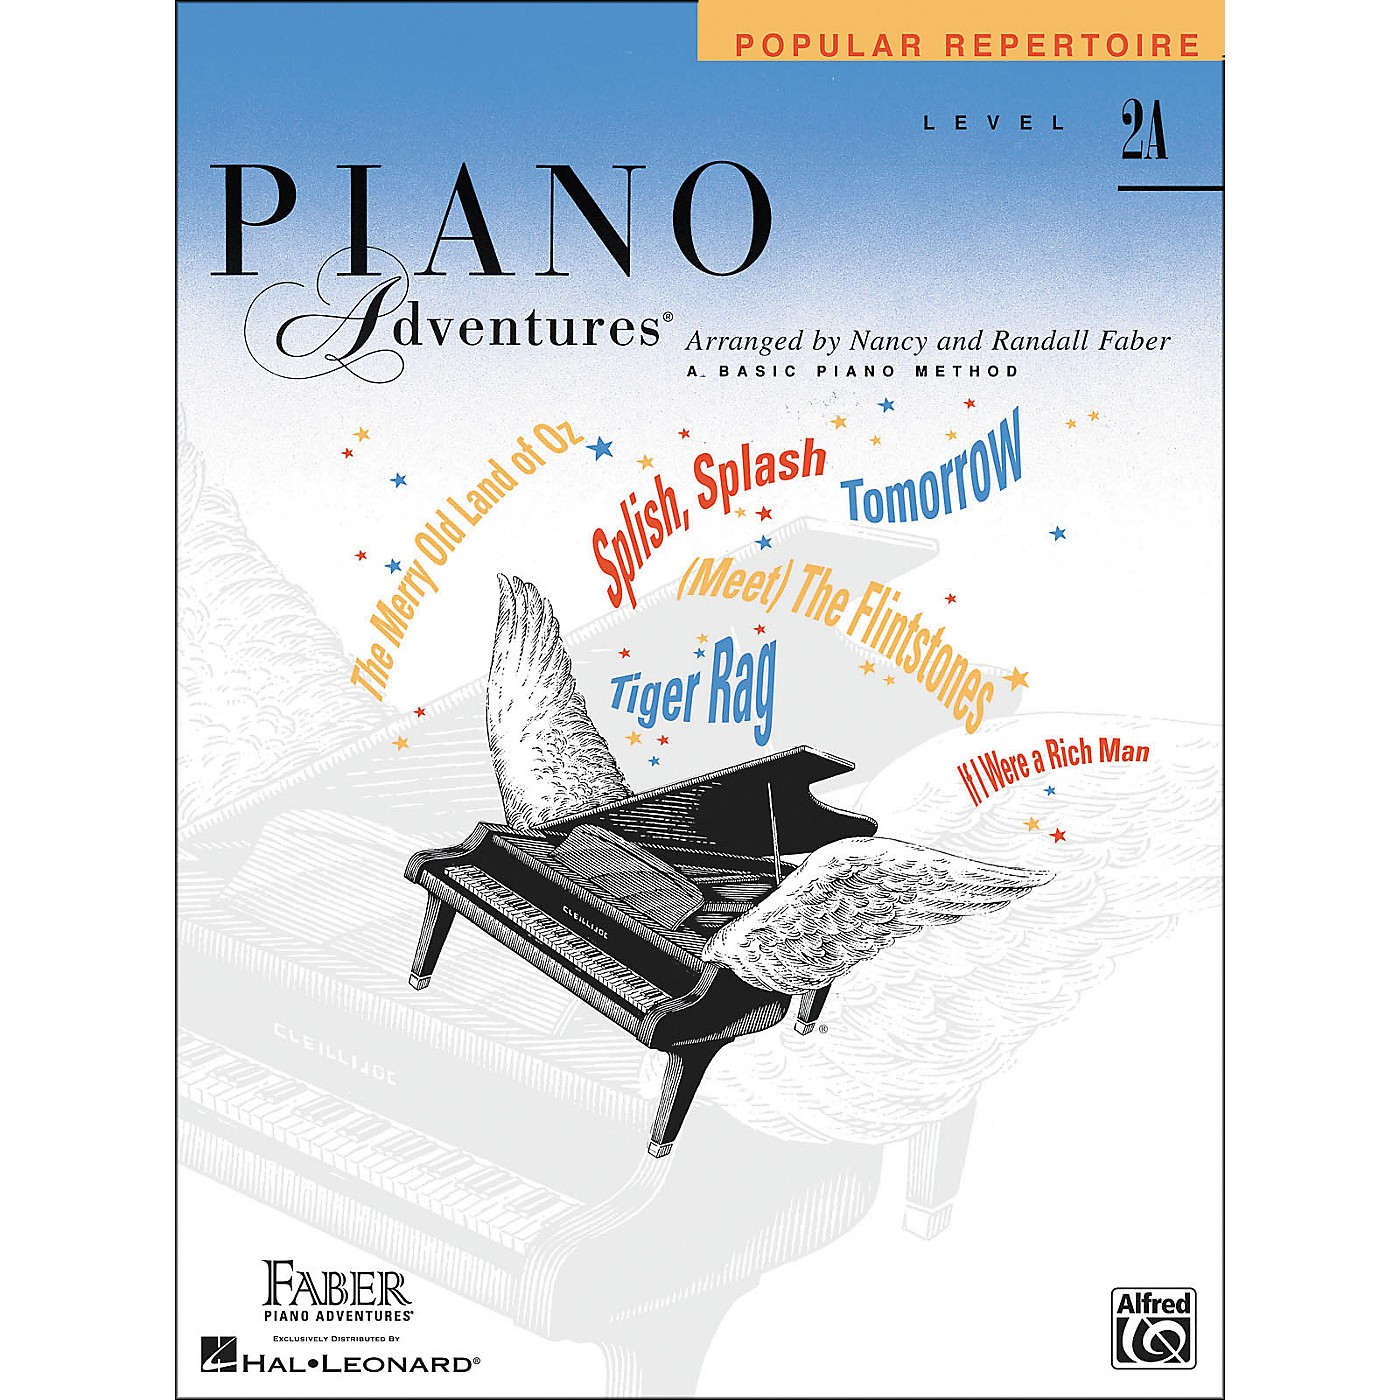 Faber Piano Adventures Piano Adventures Popular Repertoire Level 2A - Faber Piano thumbnail